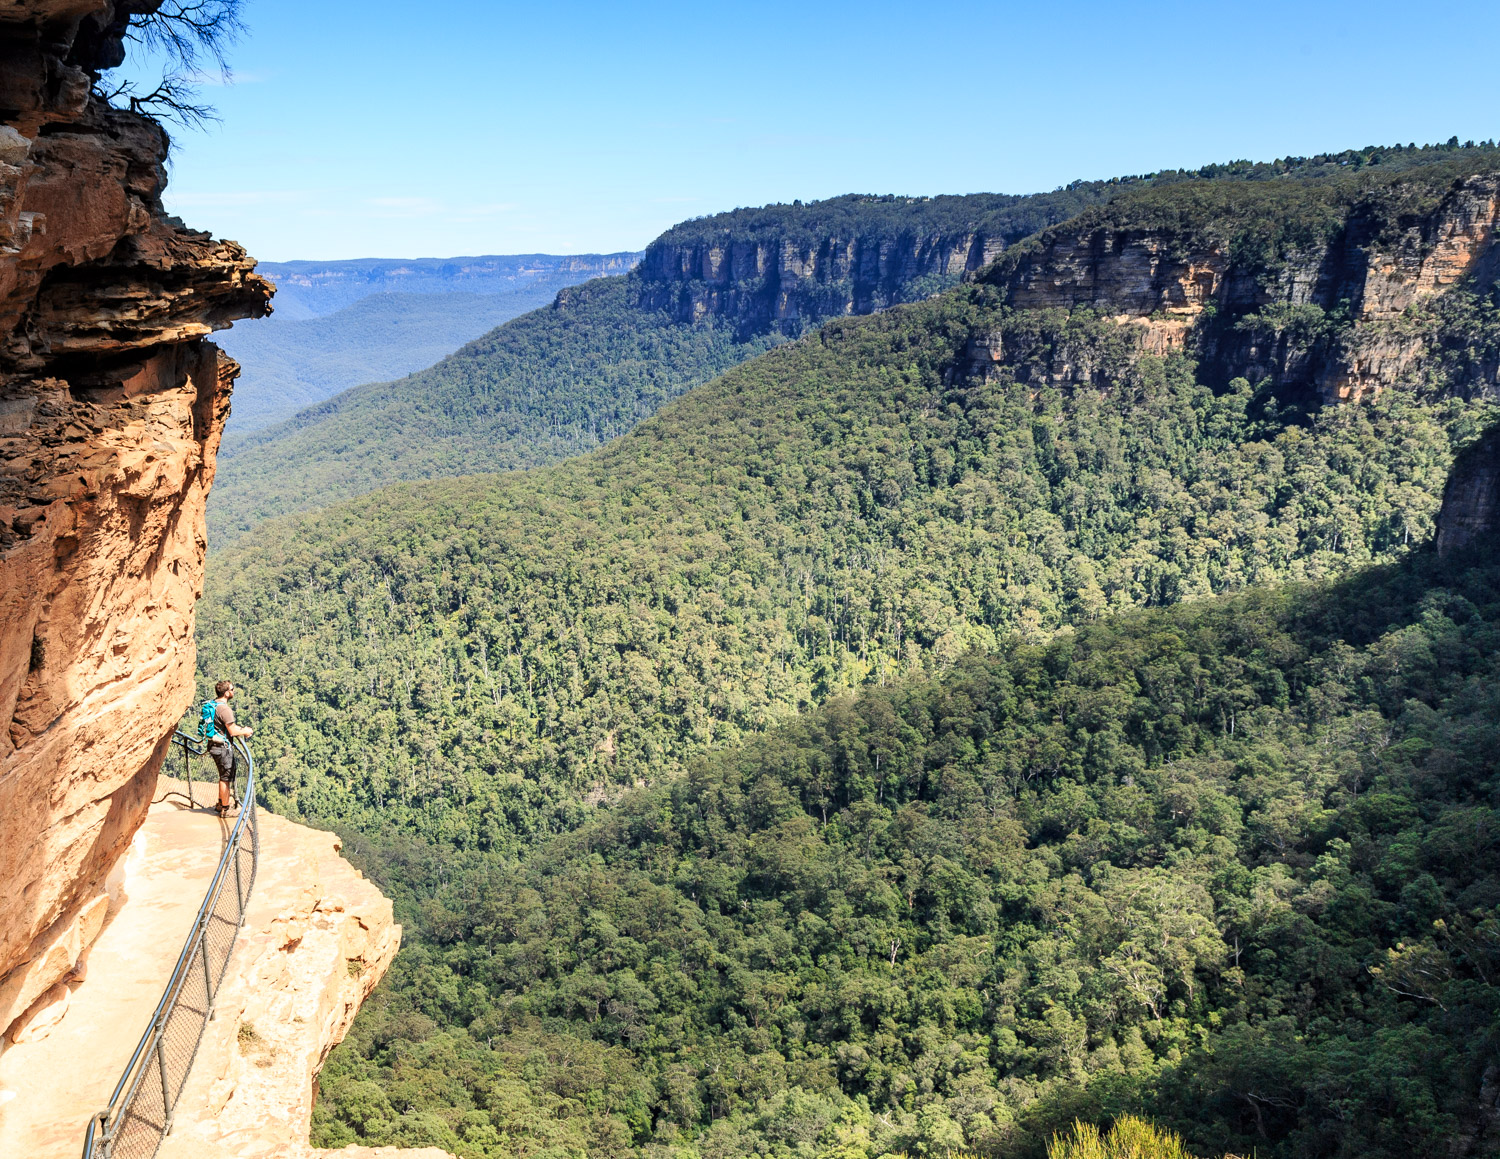 Must-see places in Australia: Blue Mountains, National Pass